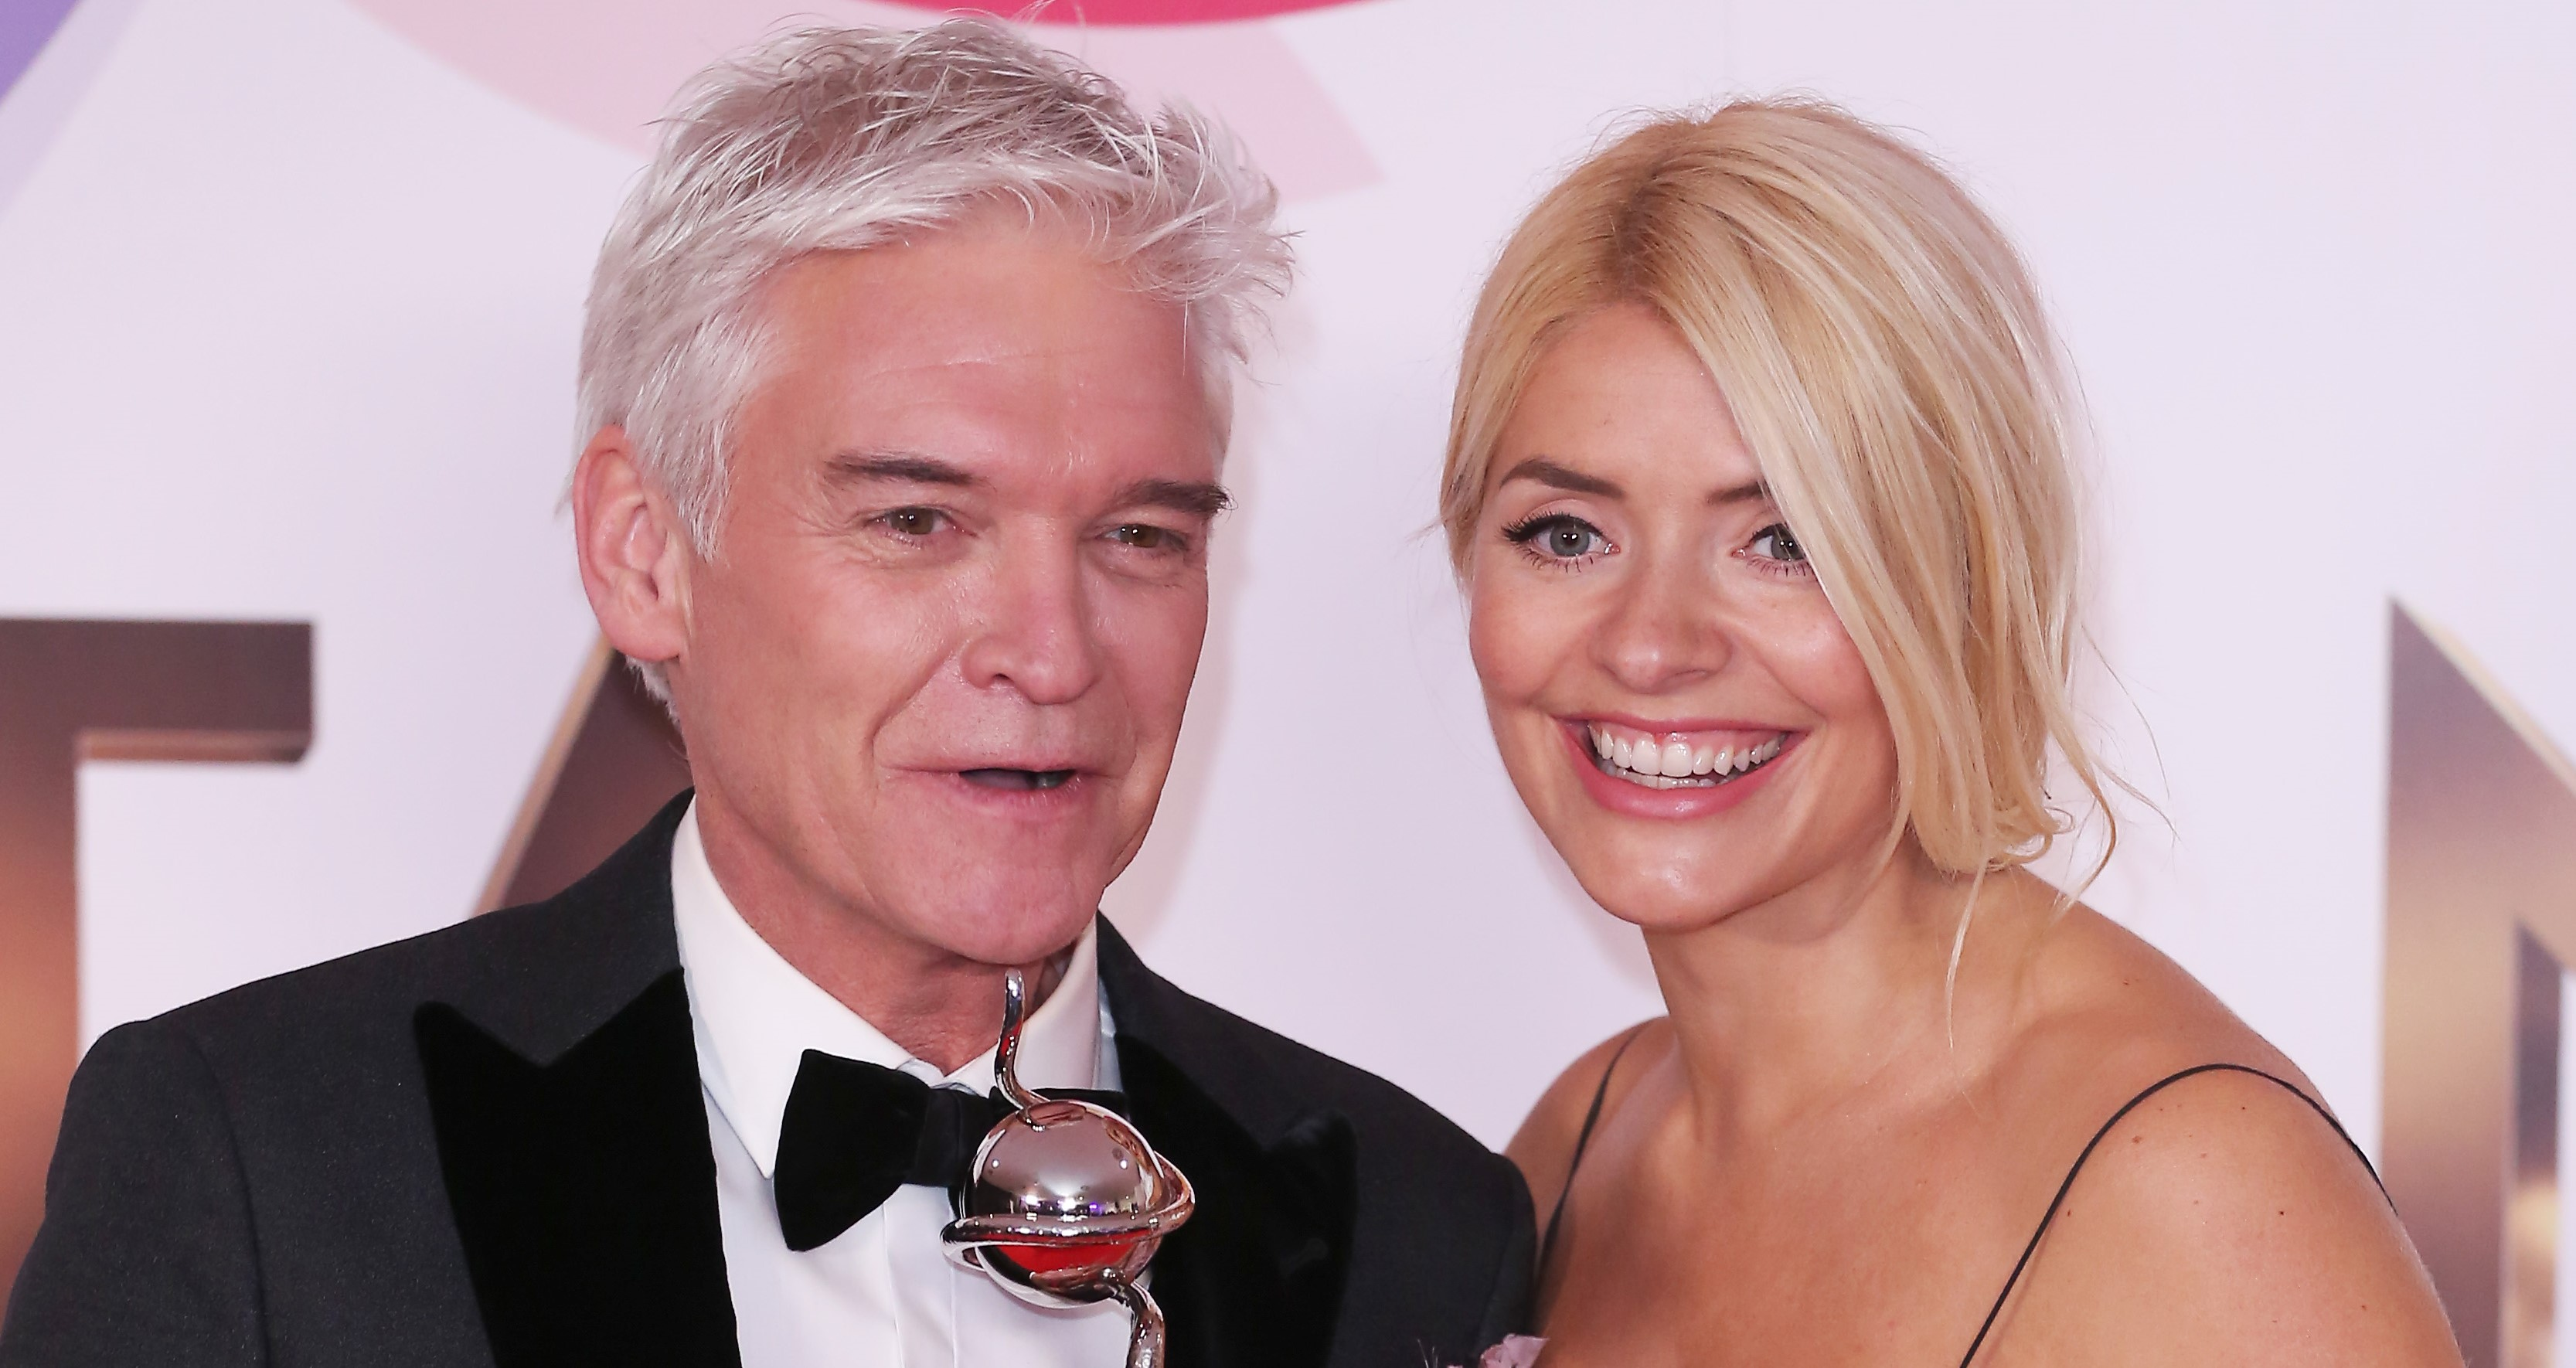 Holly Willoughby tears up discussing relationship with Phillip Schofield amid 'feud' claims